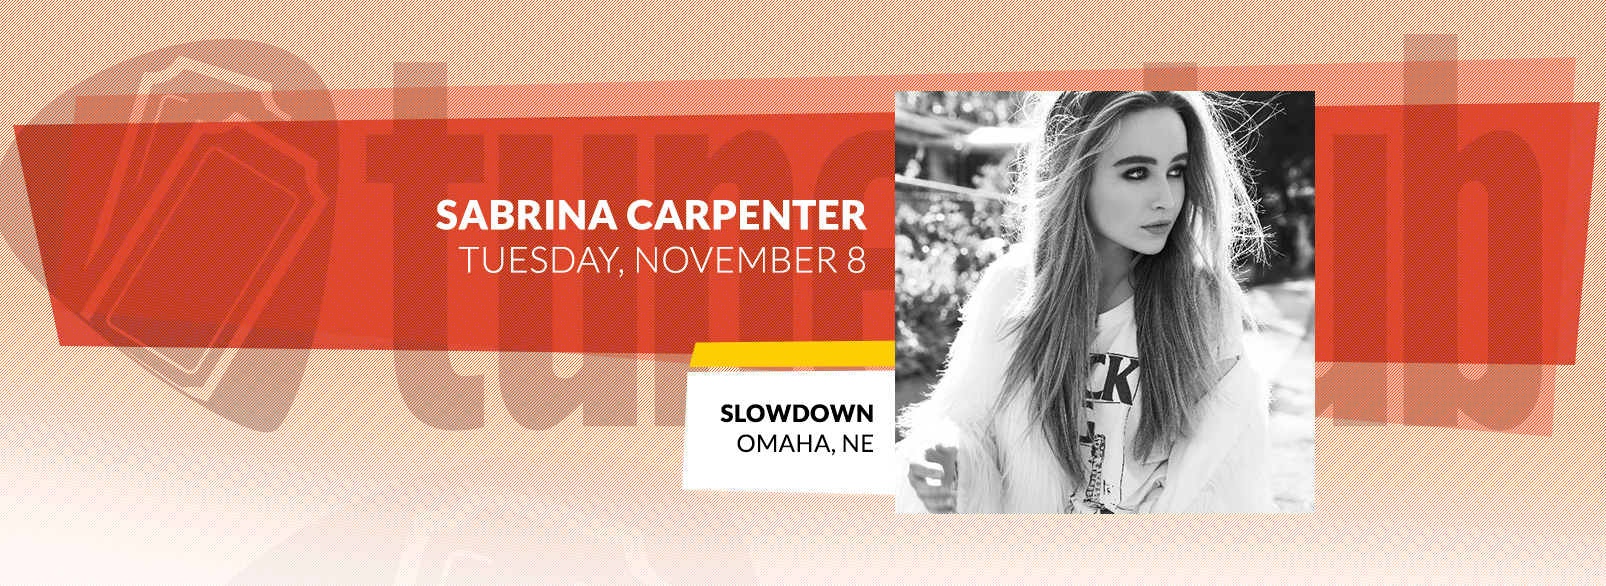 Sabrina Carpenter @ Slowdown